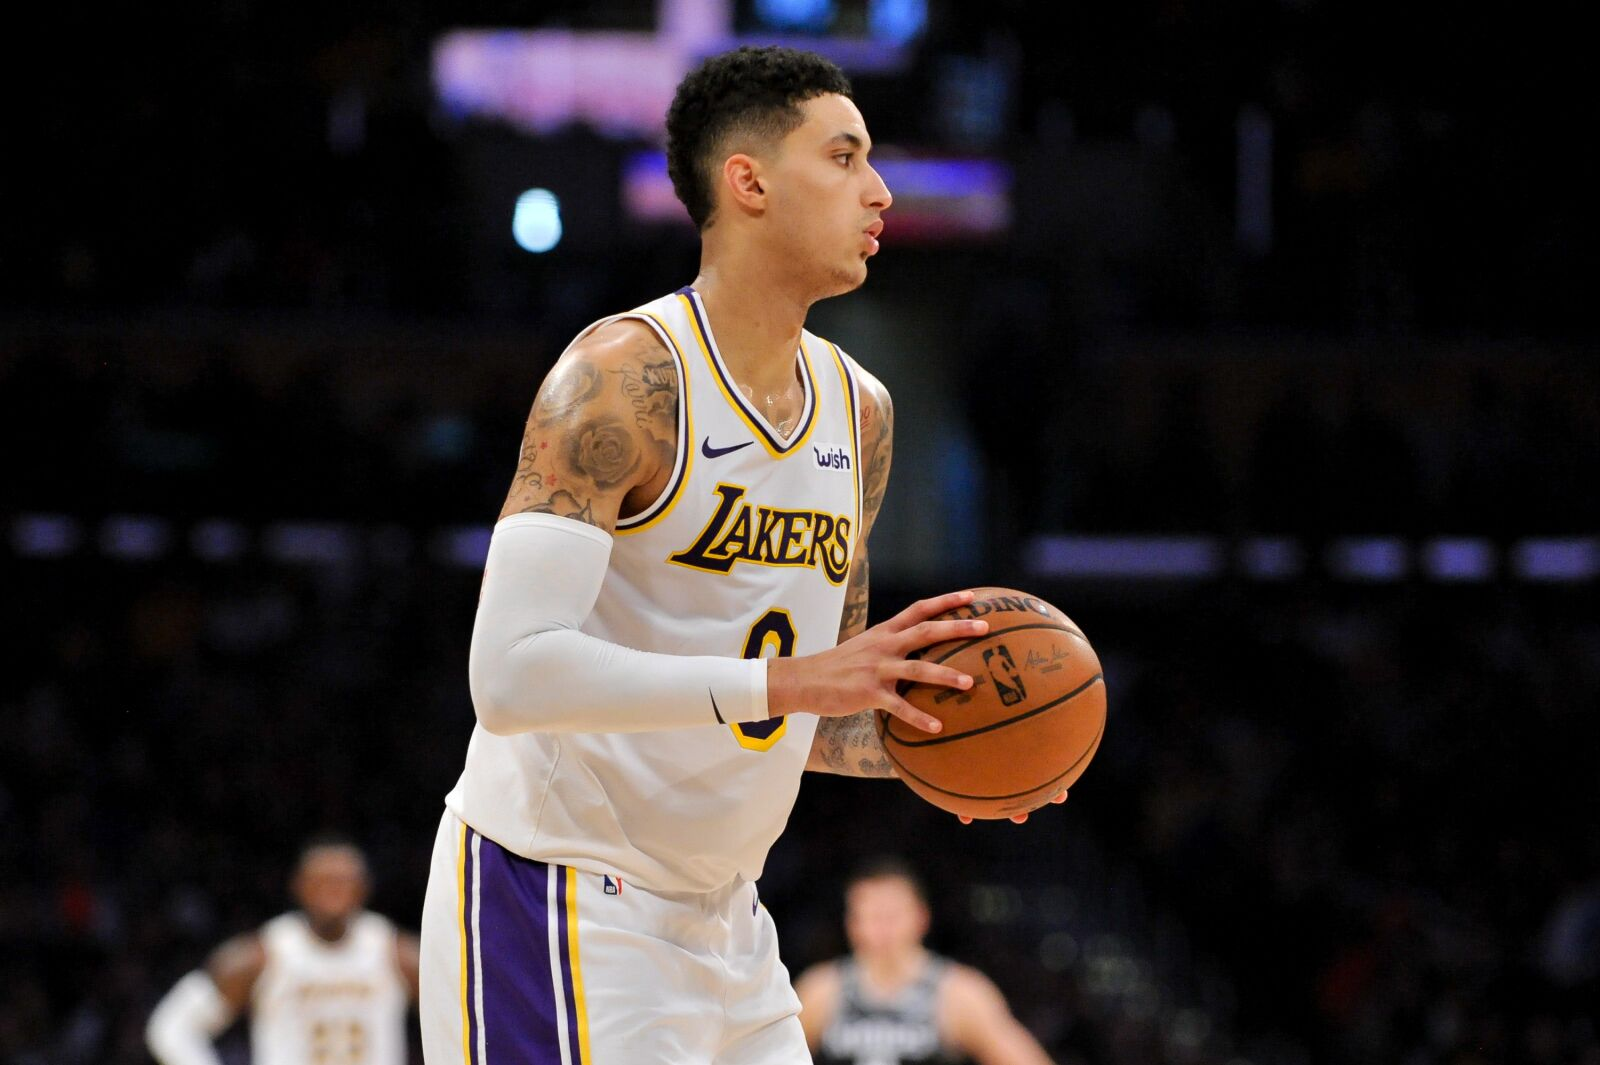 Los Angeles Lakers: Five weaknesses from 2018-19 that Kyle Kuzma will improve in 2019-20